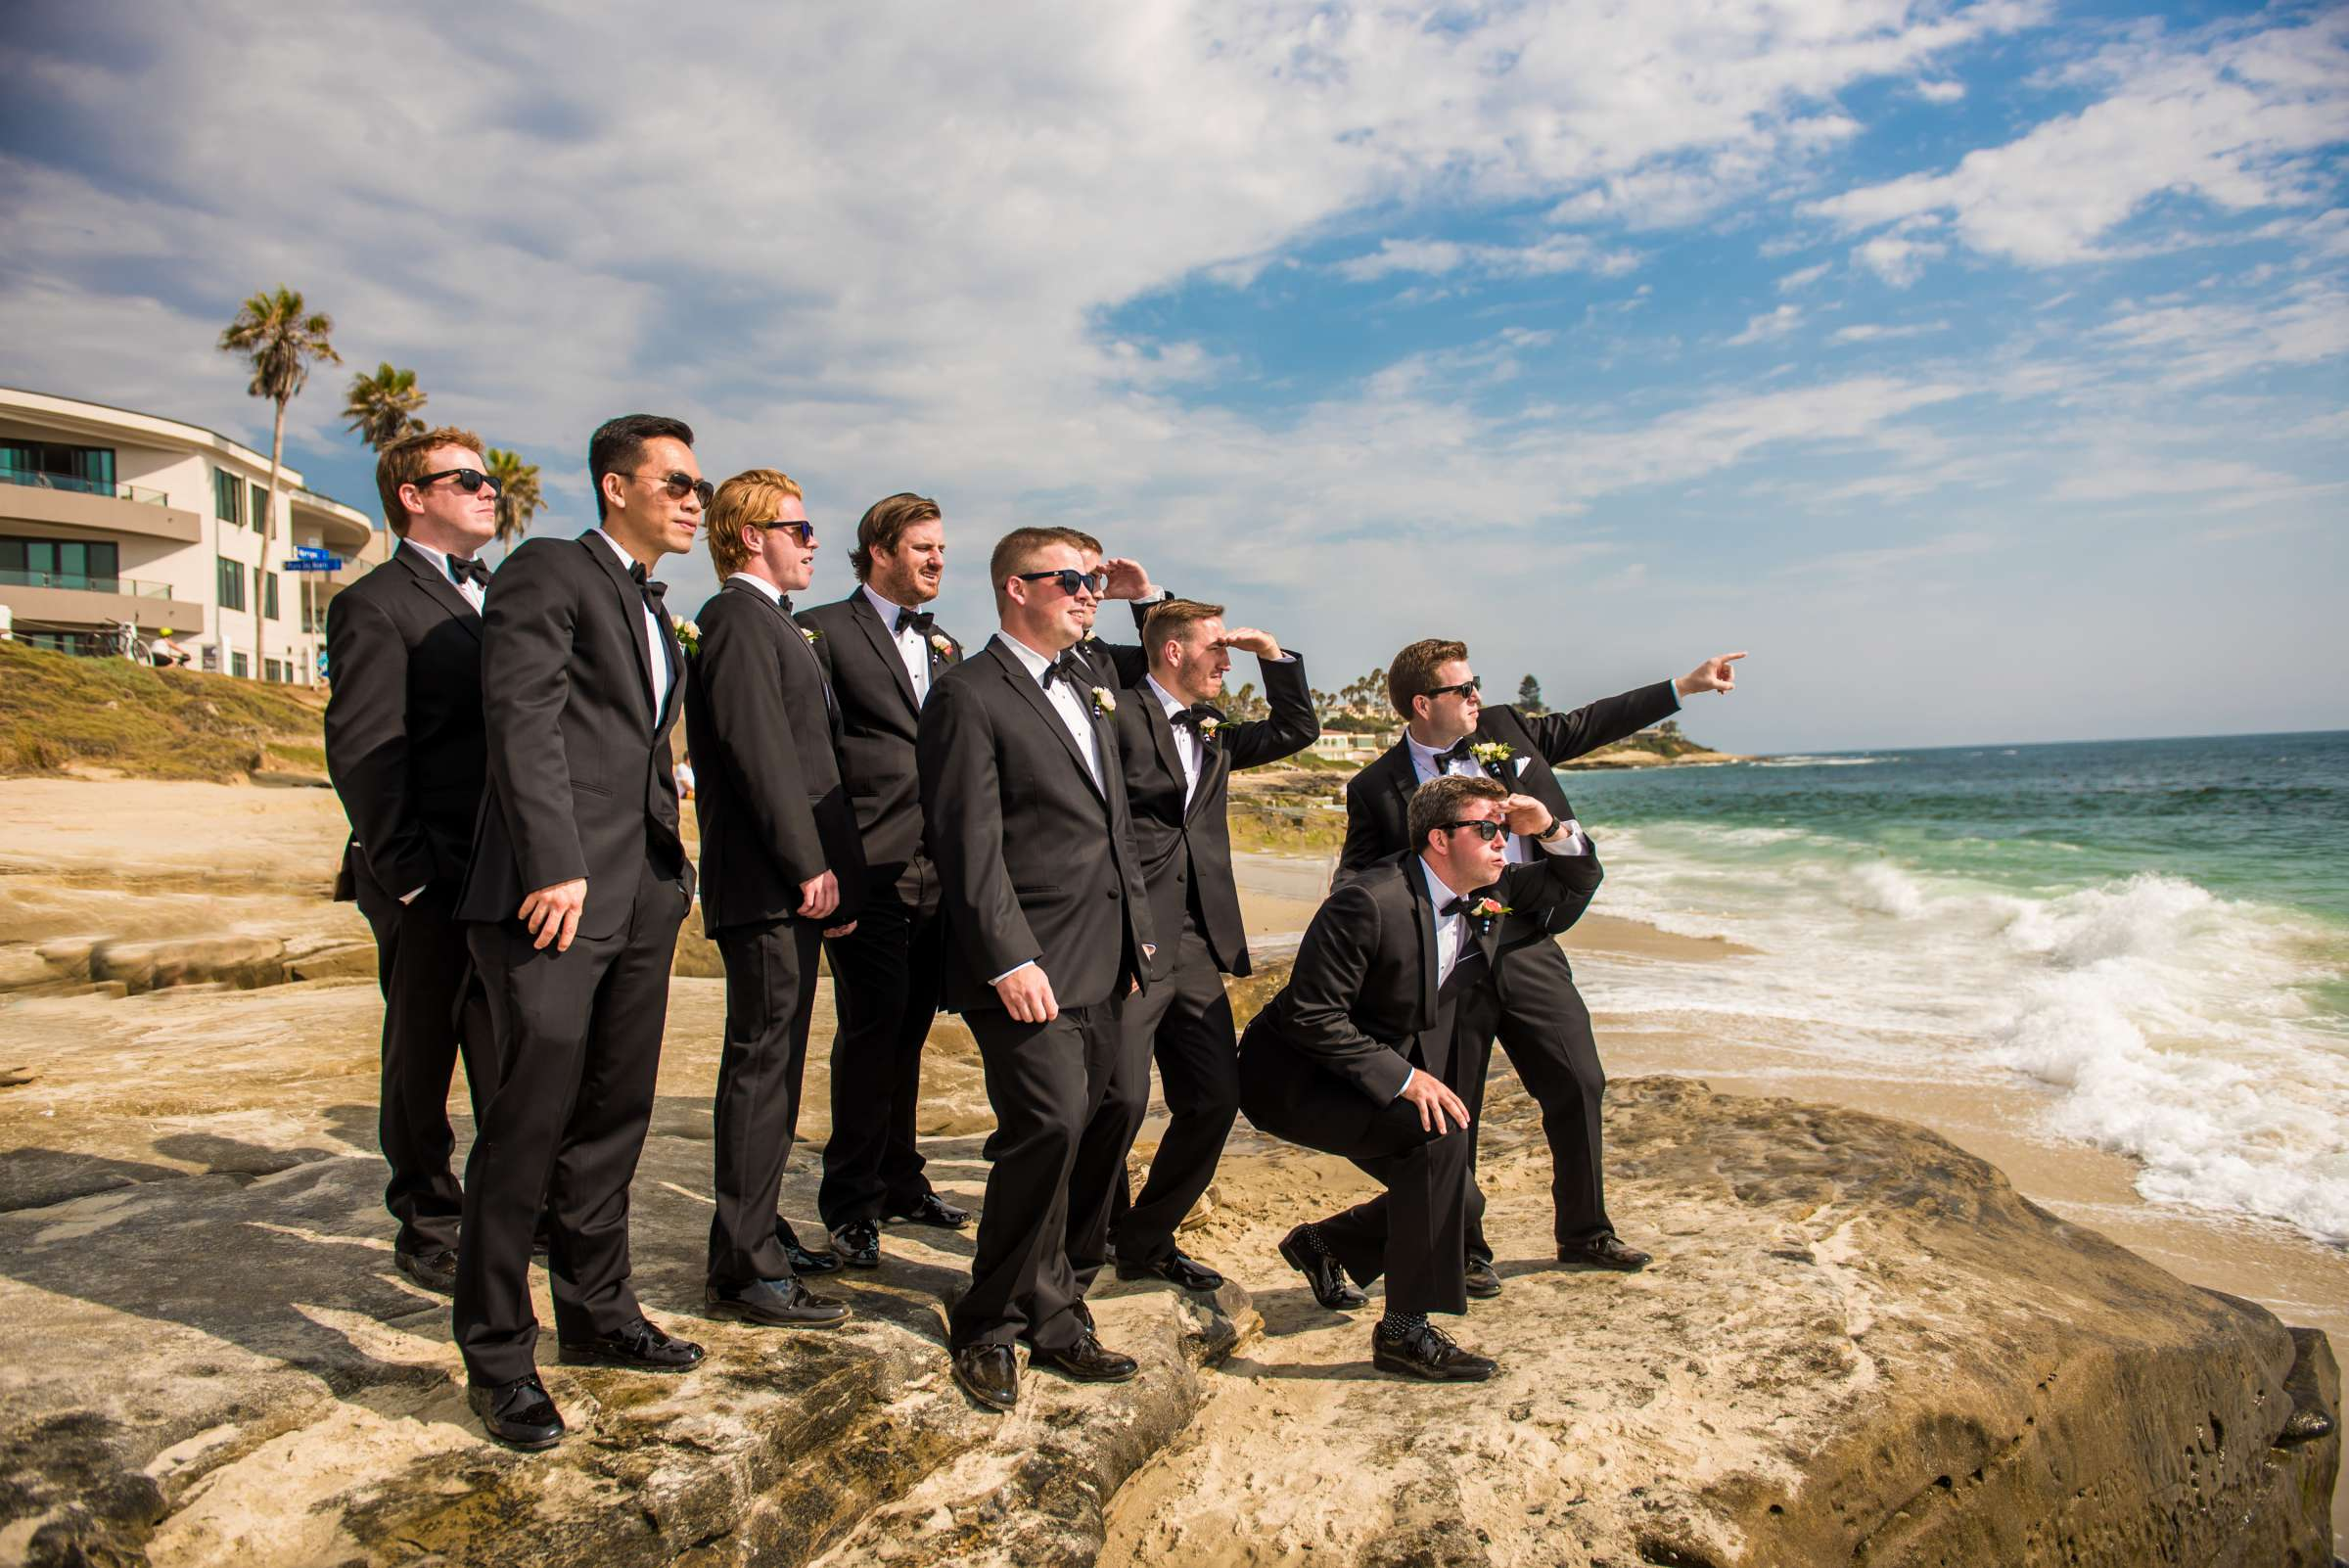 Groomsmen at Bahia Hotel Wedding coordinated by I Do Weddings, Meredith and Jack Wedding Photo #62 by True Photography